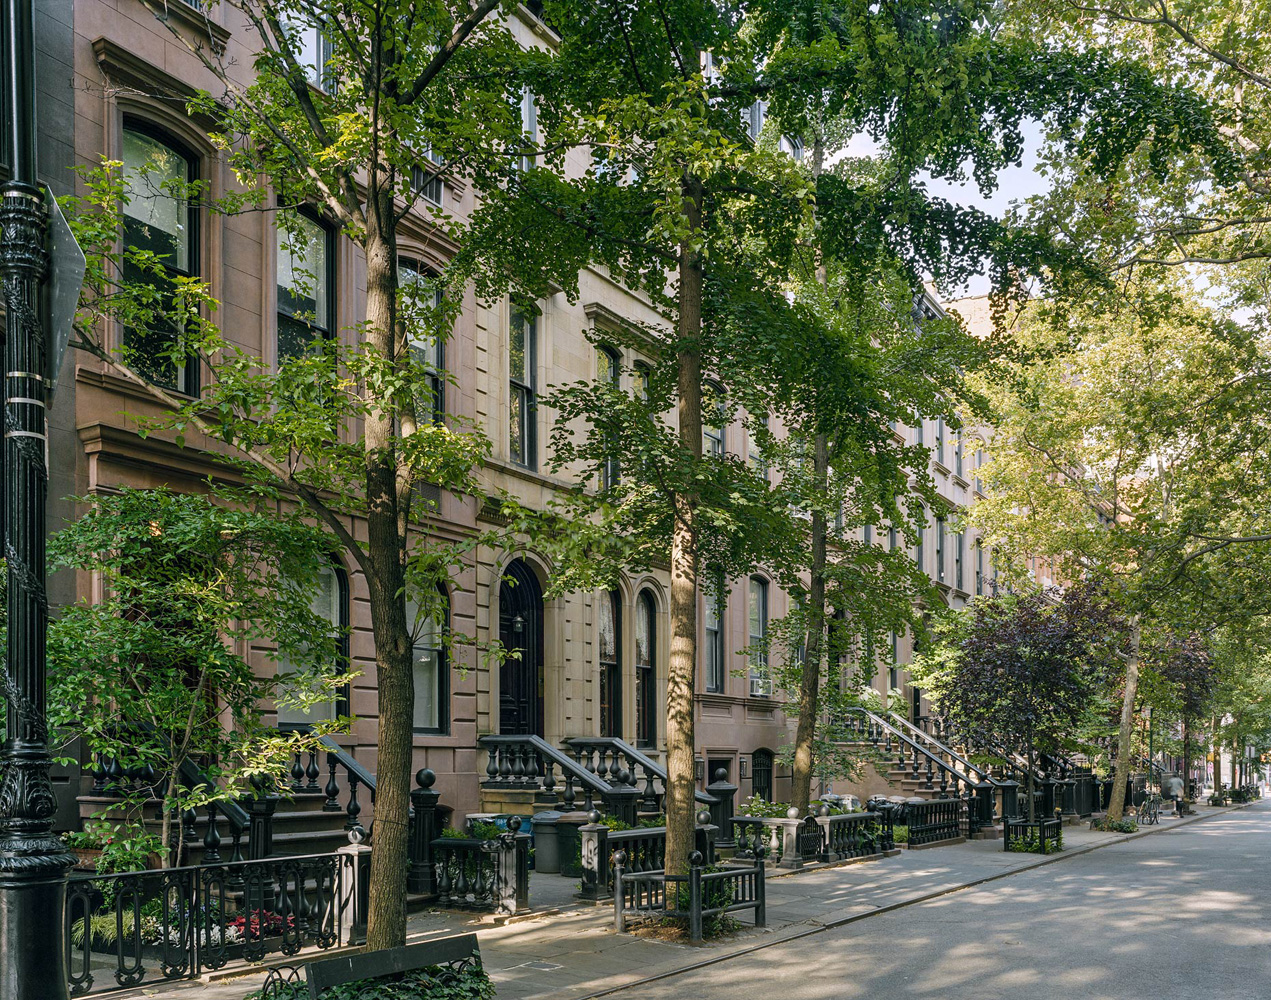 Brownstones, West Village, New York, 2005-2007, by David Leventi. Dibond print of the brownstone flats and trees from the street view at day